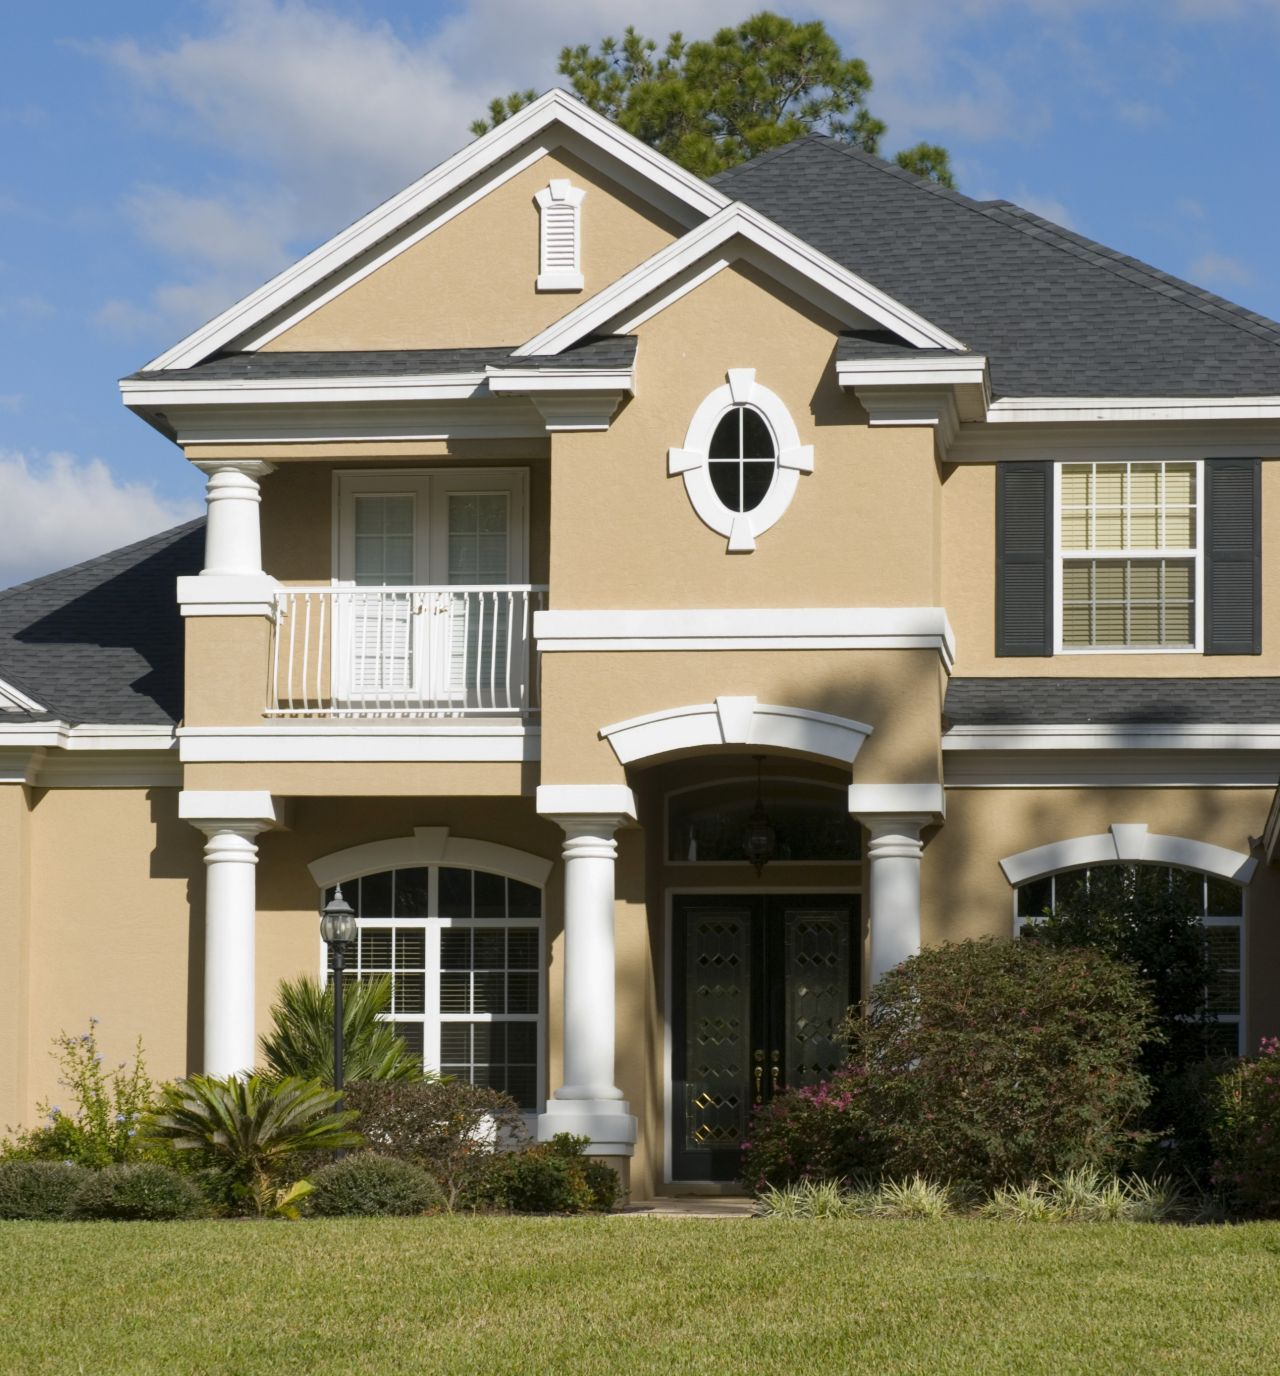 ravishing exterior paint color combinations small room new on exterior house paint colors schemes id=85534